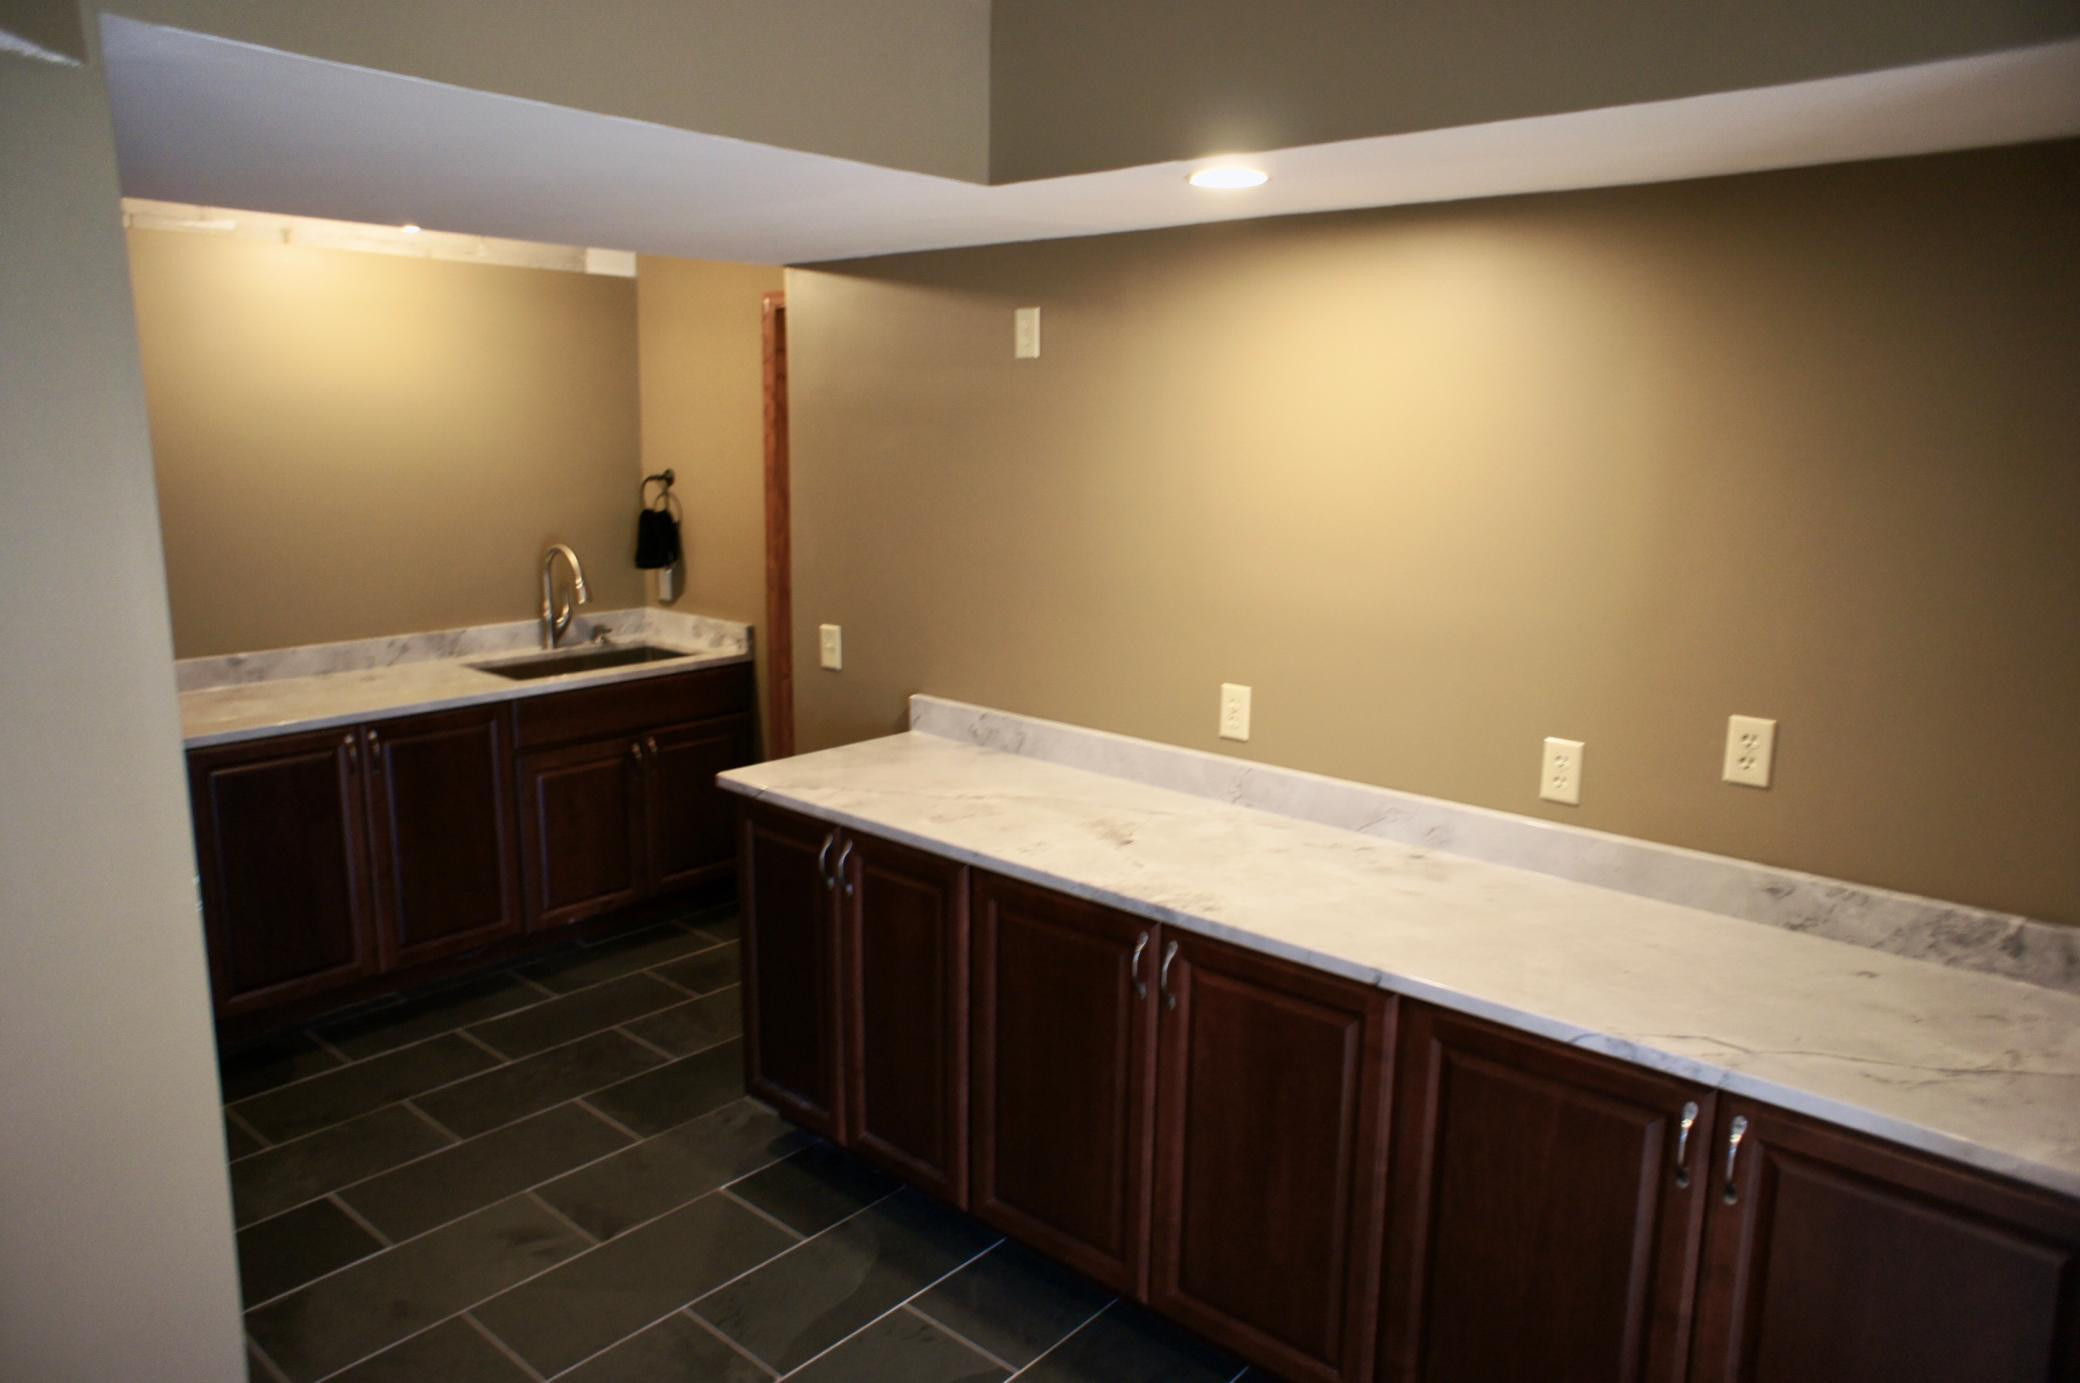 This is one nicely remodeled laundry area.